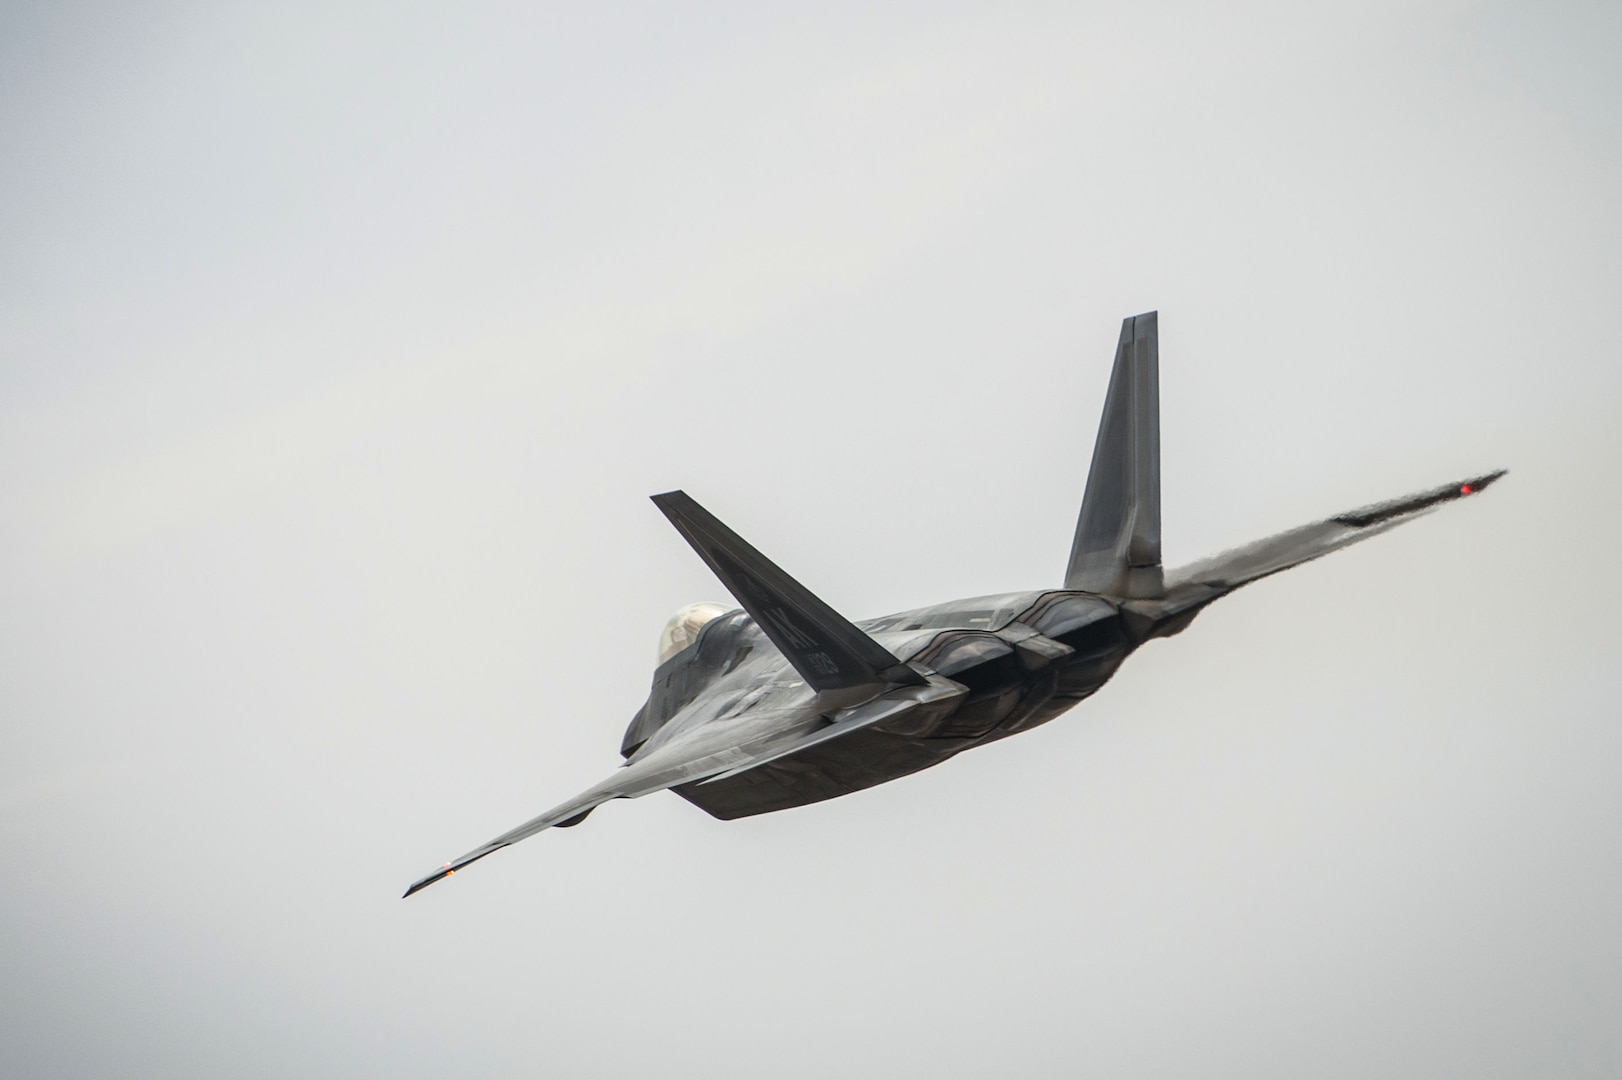 An F-22 Raptor launches a sortie in support of Combined Joint Task Force-Operation Inherent Resolve from an undisclosed location in Southwest Asia, Feb. 14, 2017. F-22s have provided close air support and precision guided strikes in an effort to weaken and destroy Islamic State in Iraq and the Levant operations in the Middle East region and around the world. (U.S. Air Force photo/Senior Airman Tyler Woodward)